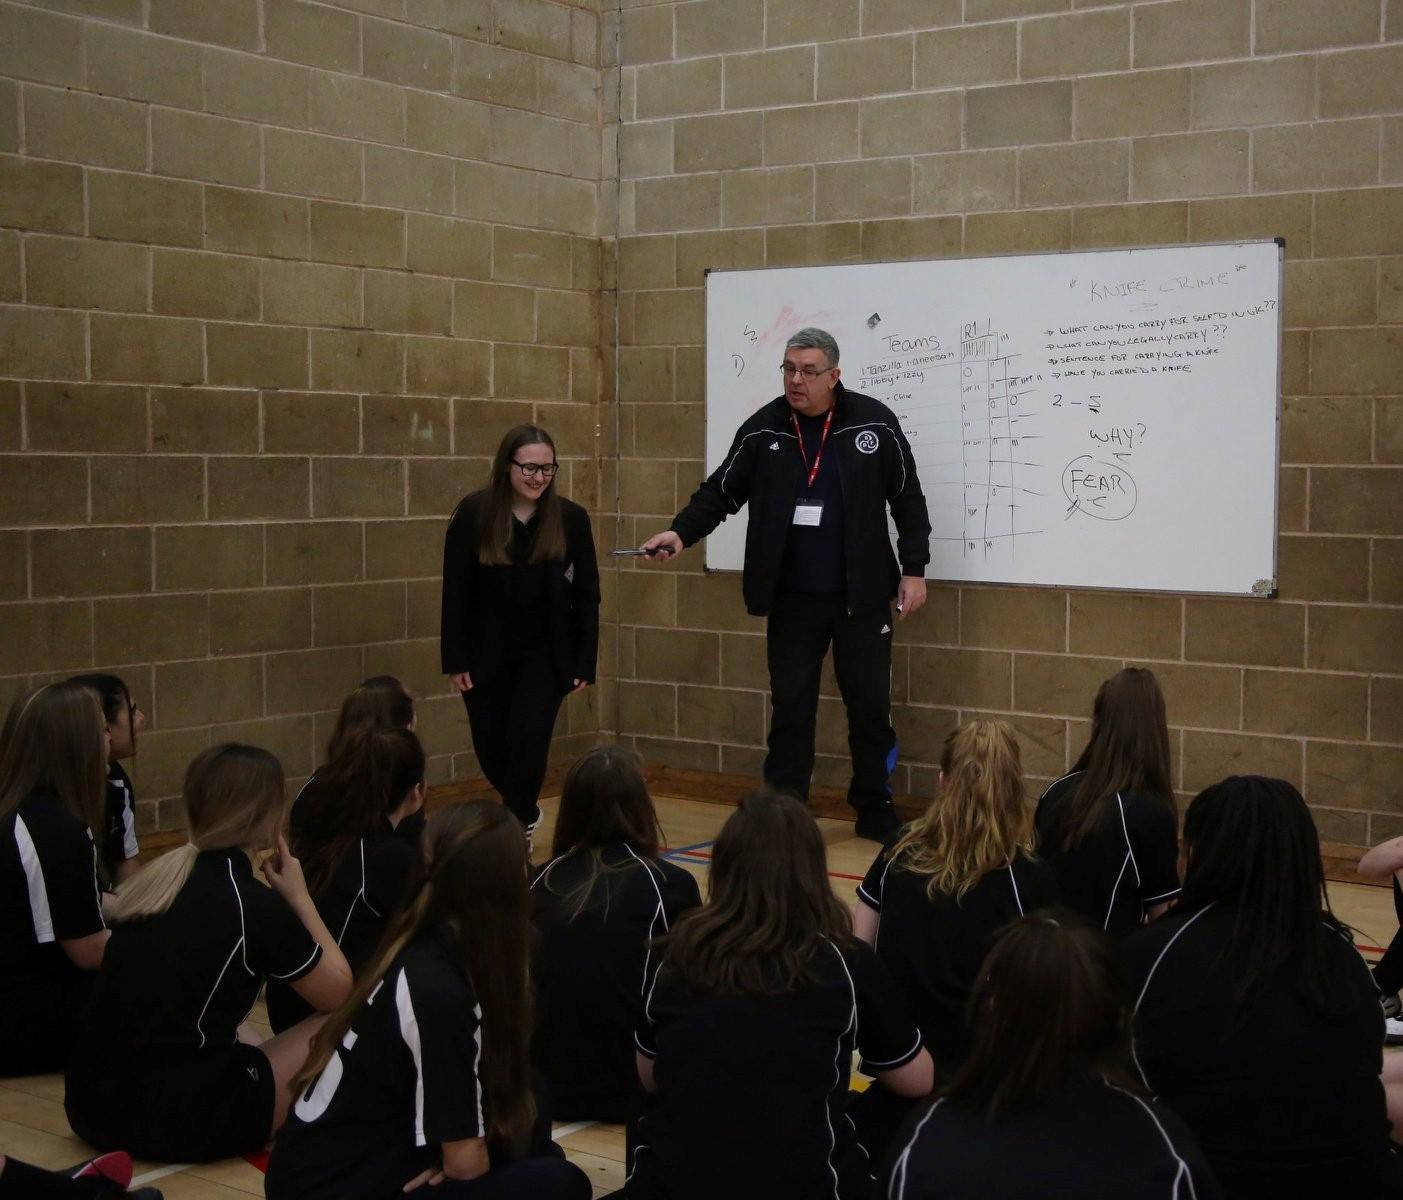 Pete Martin, with rubber knife, talking to pupils